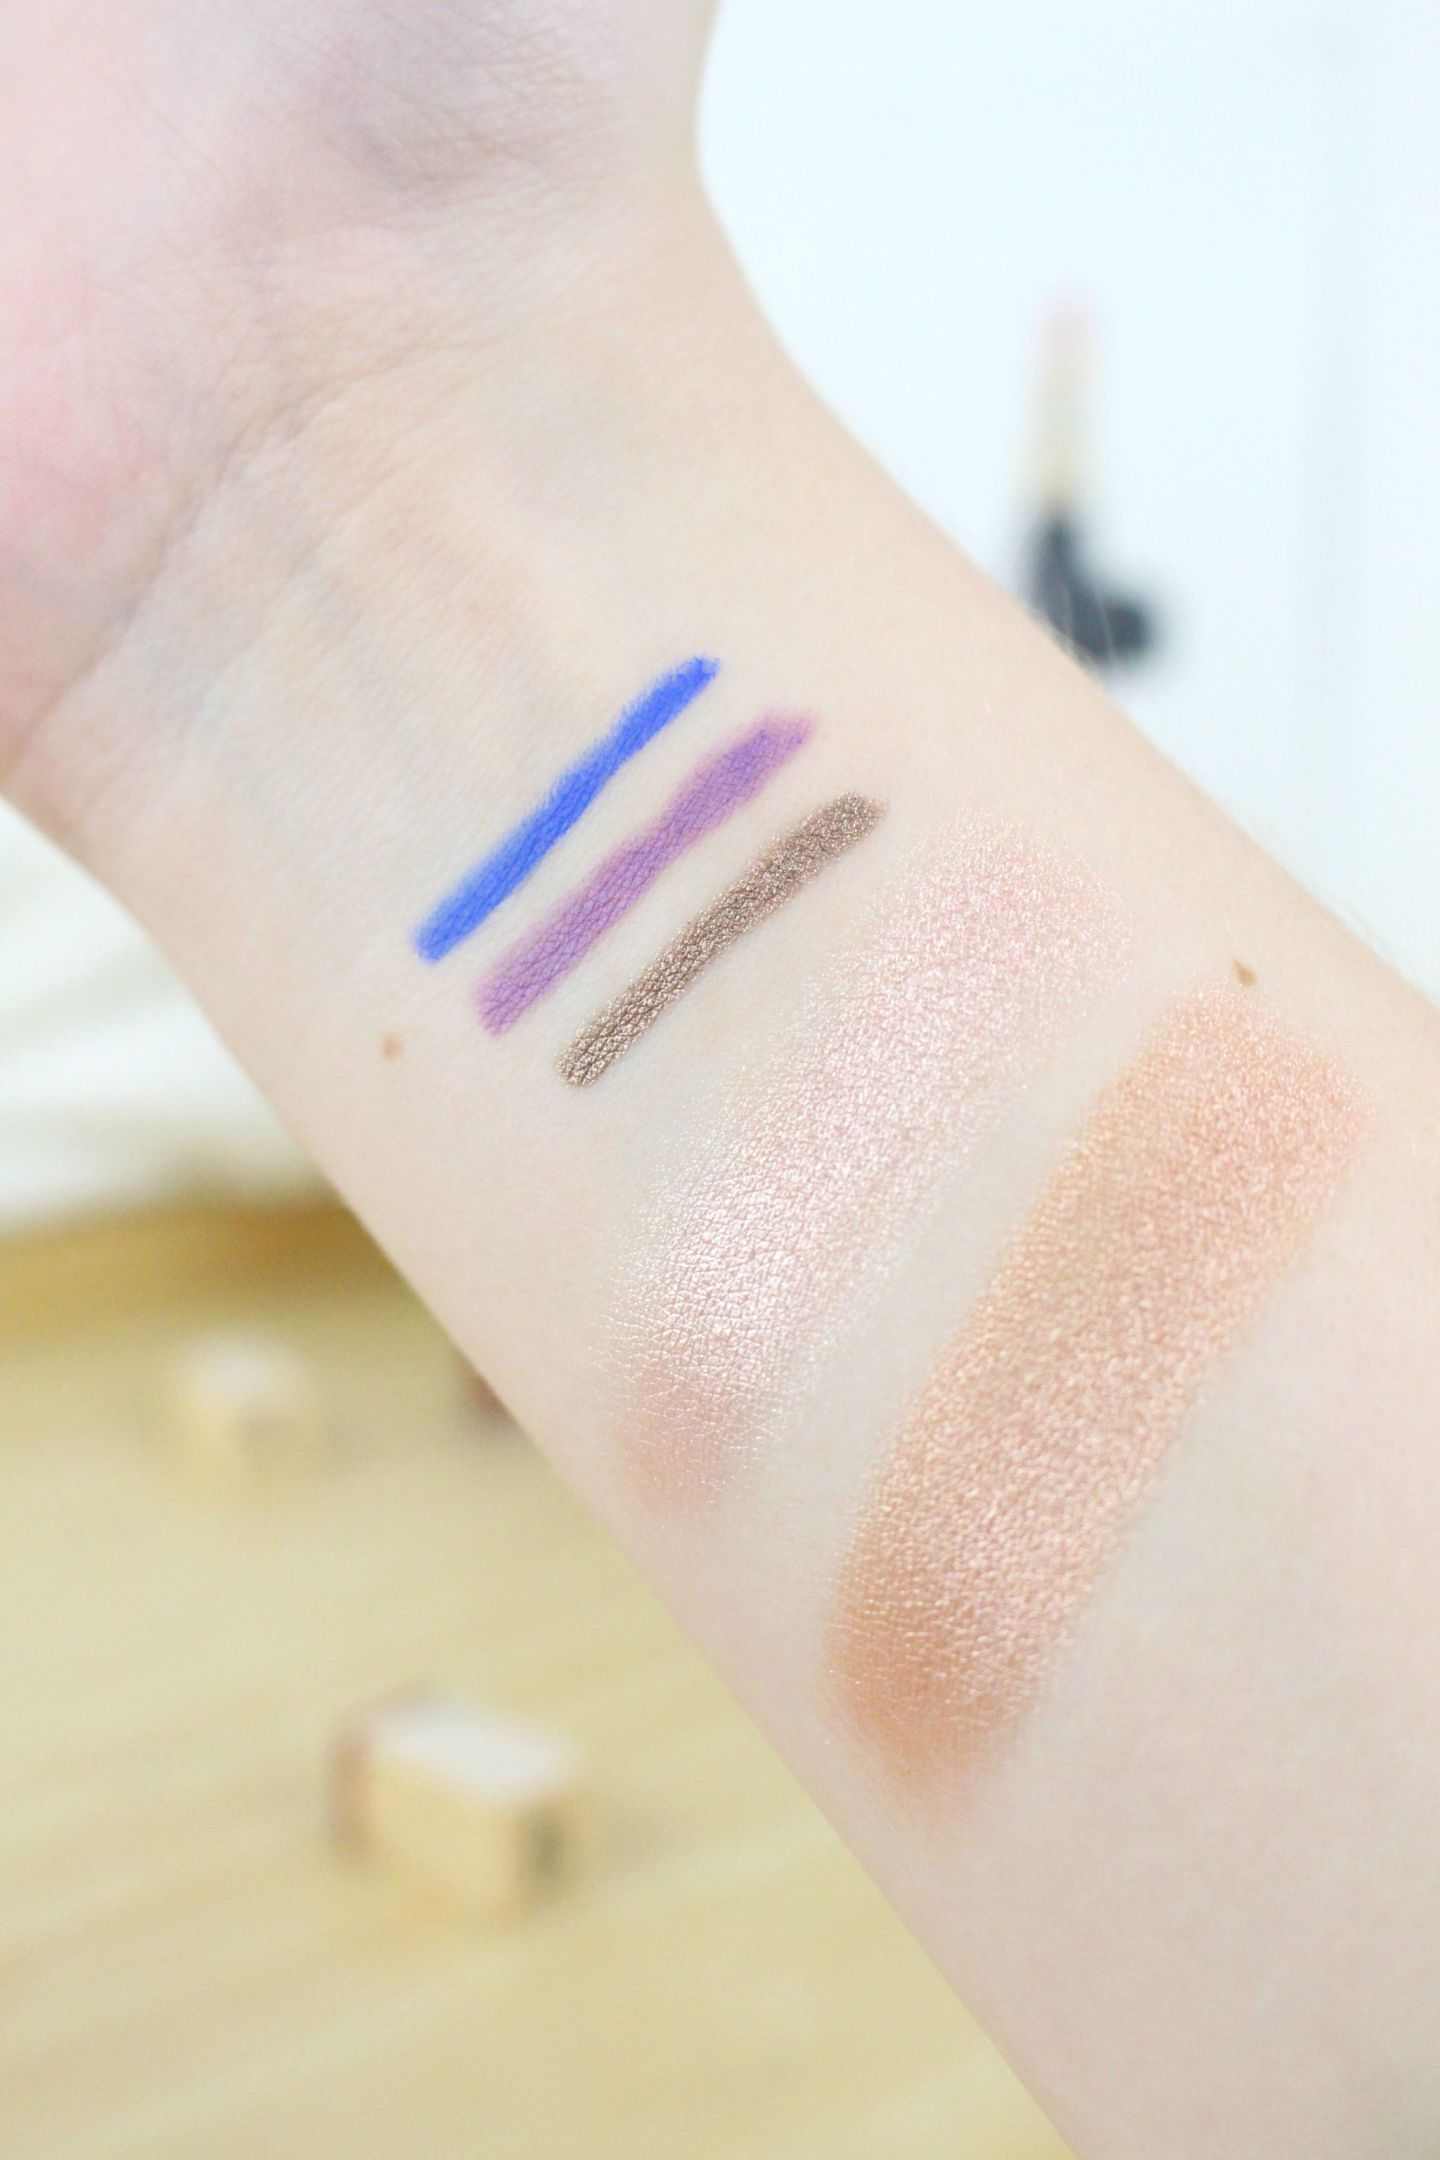 Pixi Party Essentials Glow-y Gossamer Duo and Endless Sky Liners